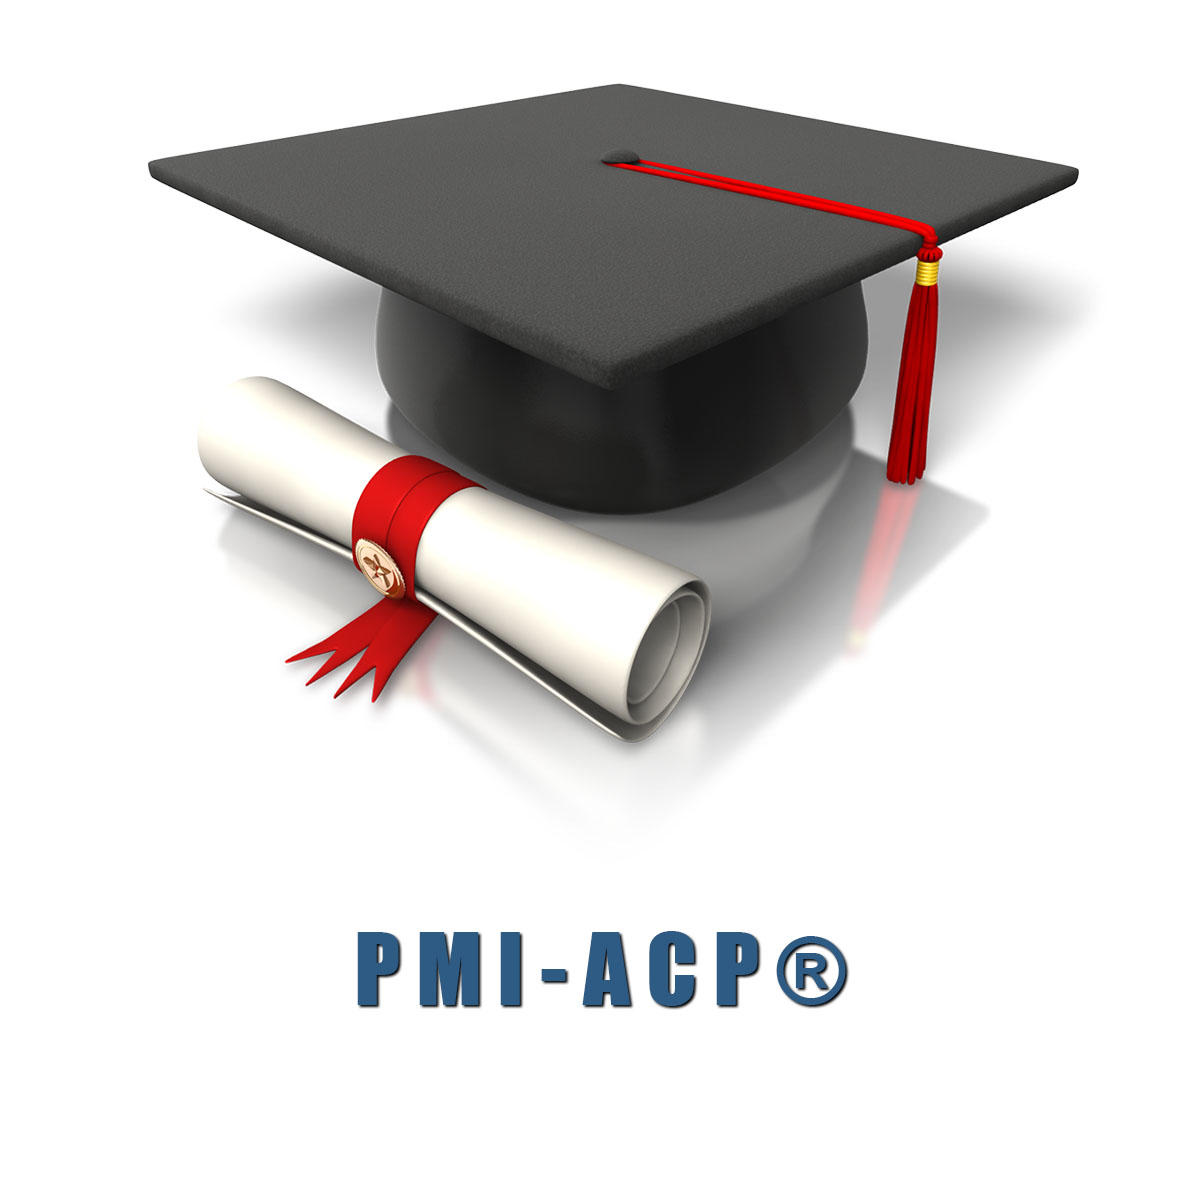 Pmi acp certification an overview hvac wiring color code mazda pmi acp 180 days management square pmi acp white 1 pmi acp 180 days pmi acp certification an overview pmi acp certification an overview xflitez Images